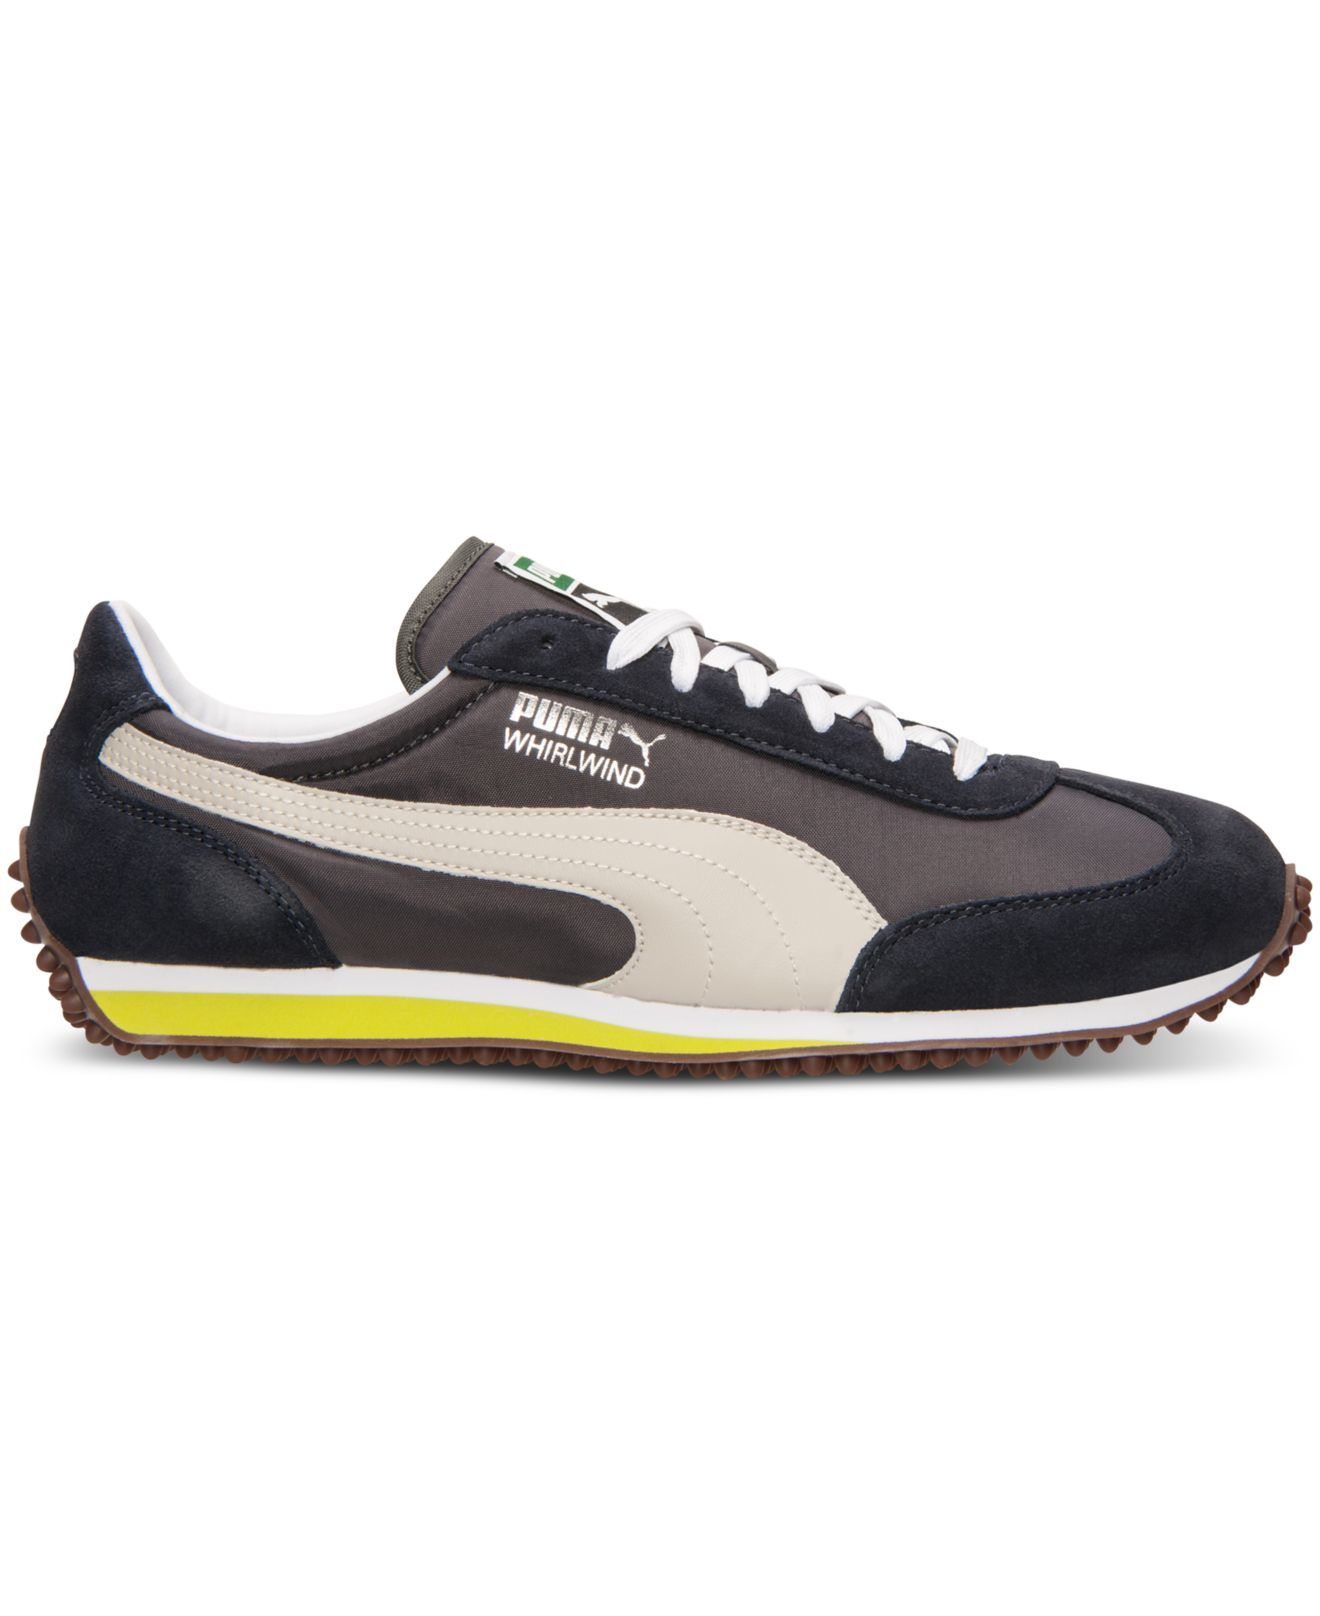 Lyst - PUMA Men s Whirlwind Classics Casual Sneakers From Finish Line in  Black for Men e9c024b53